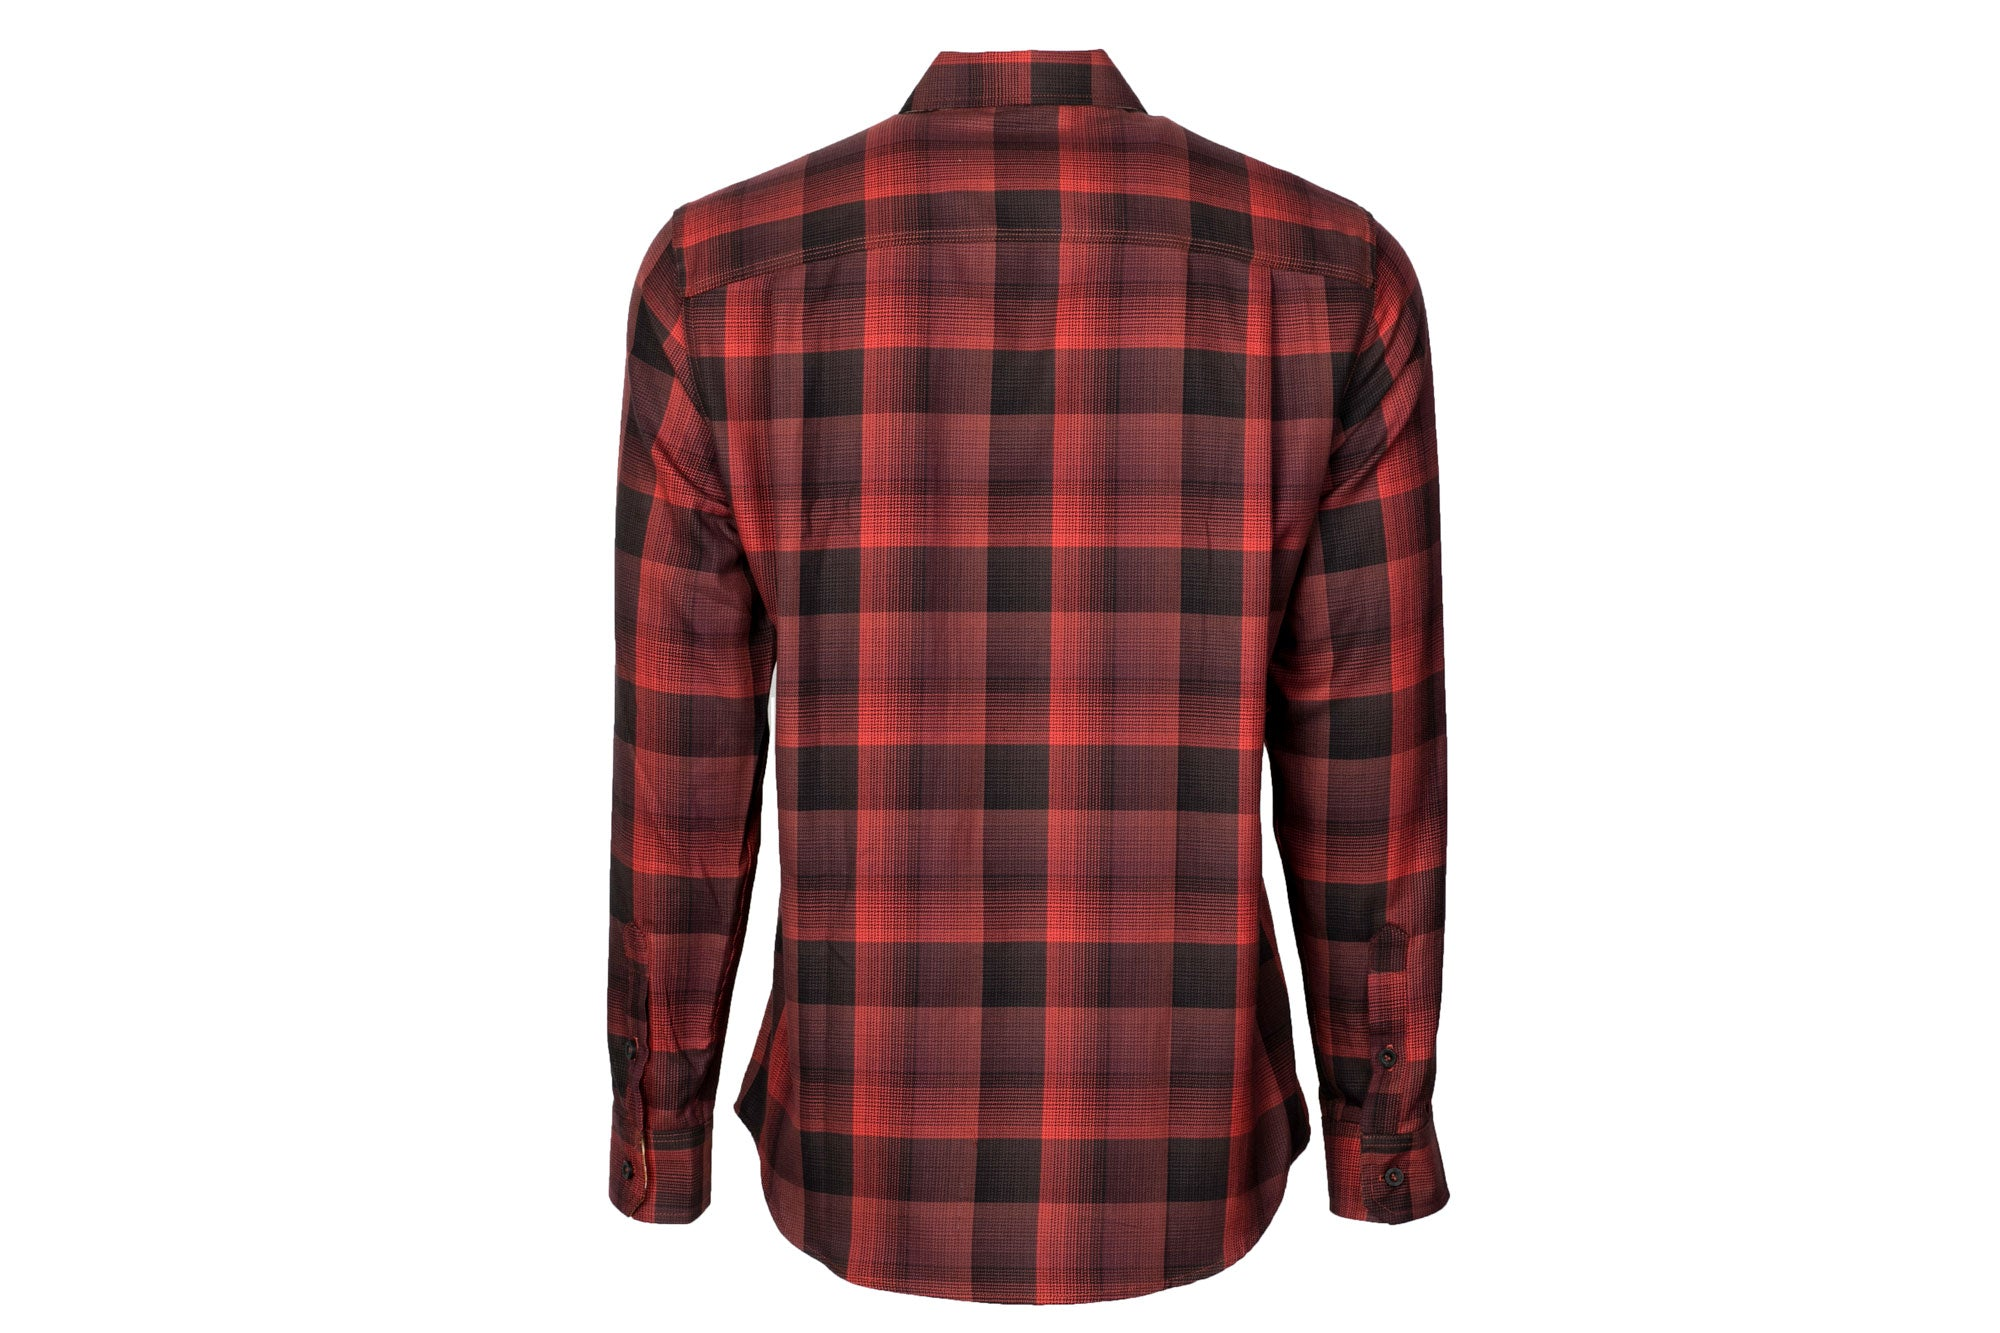 Men's Elli - Ember Red Flannel